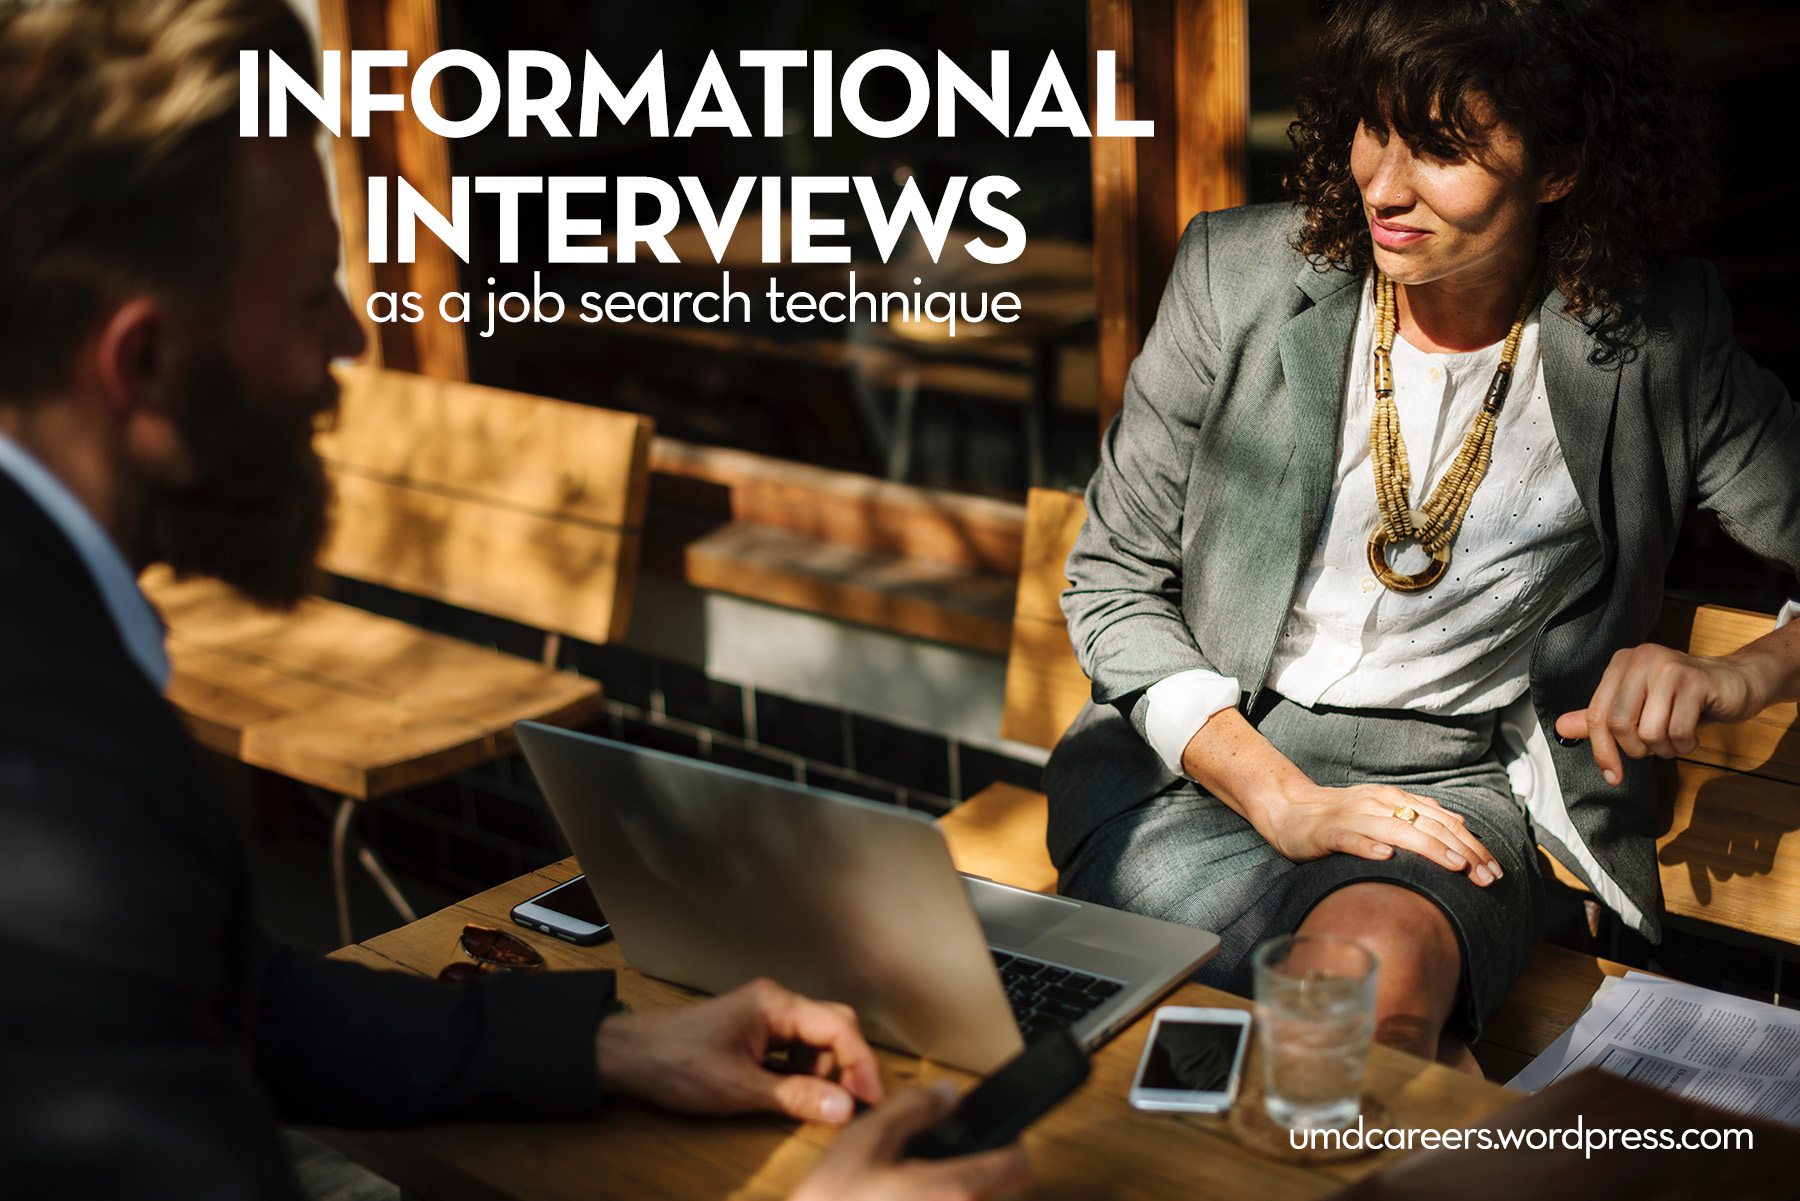 using informational interviews as a job search technique